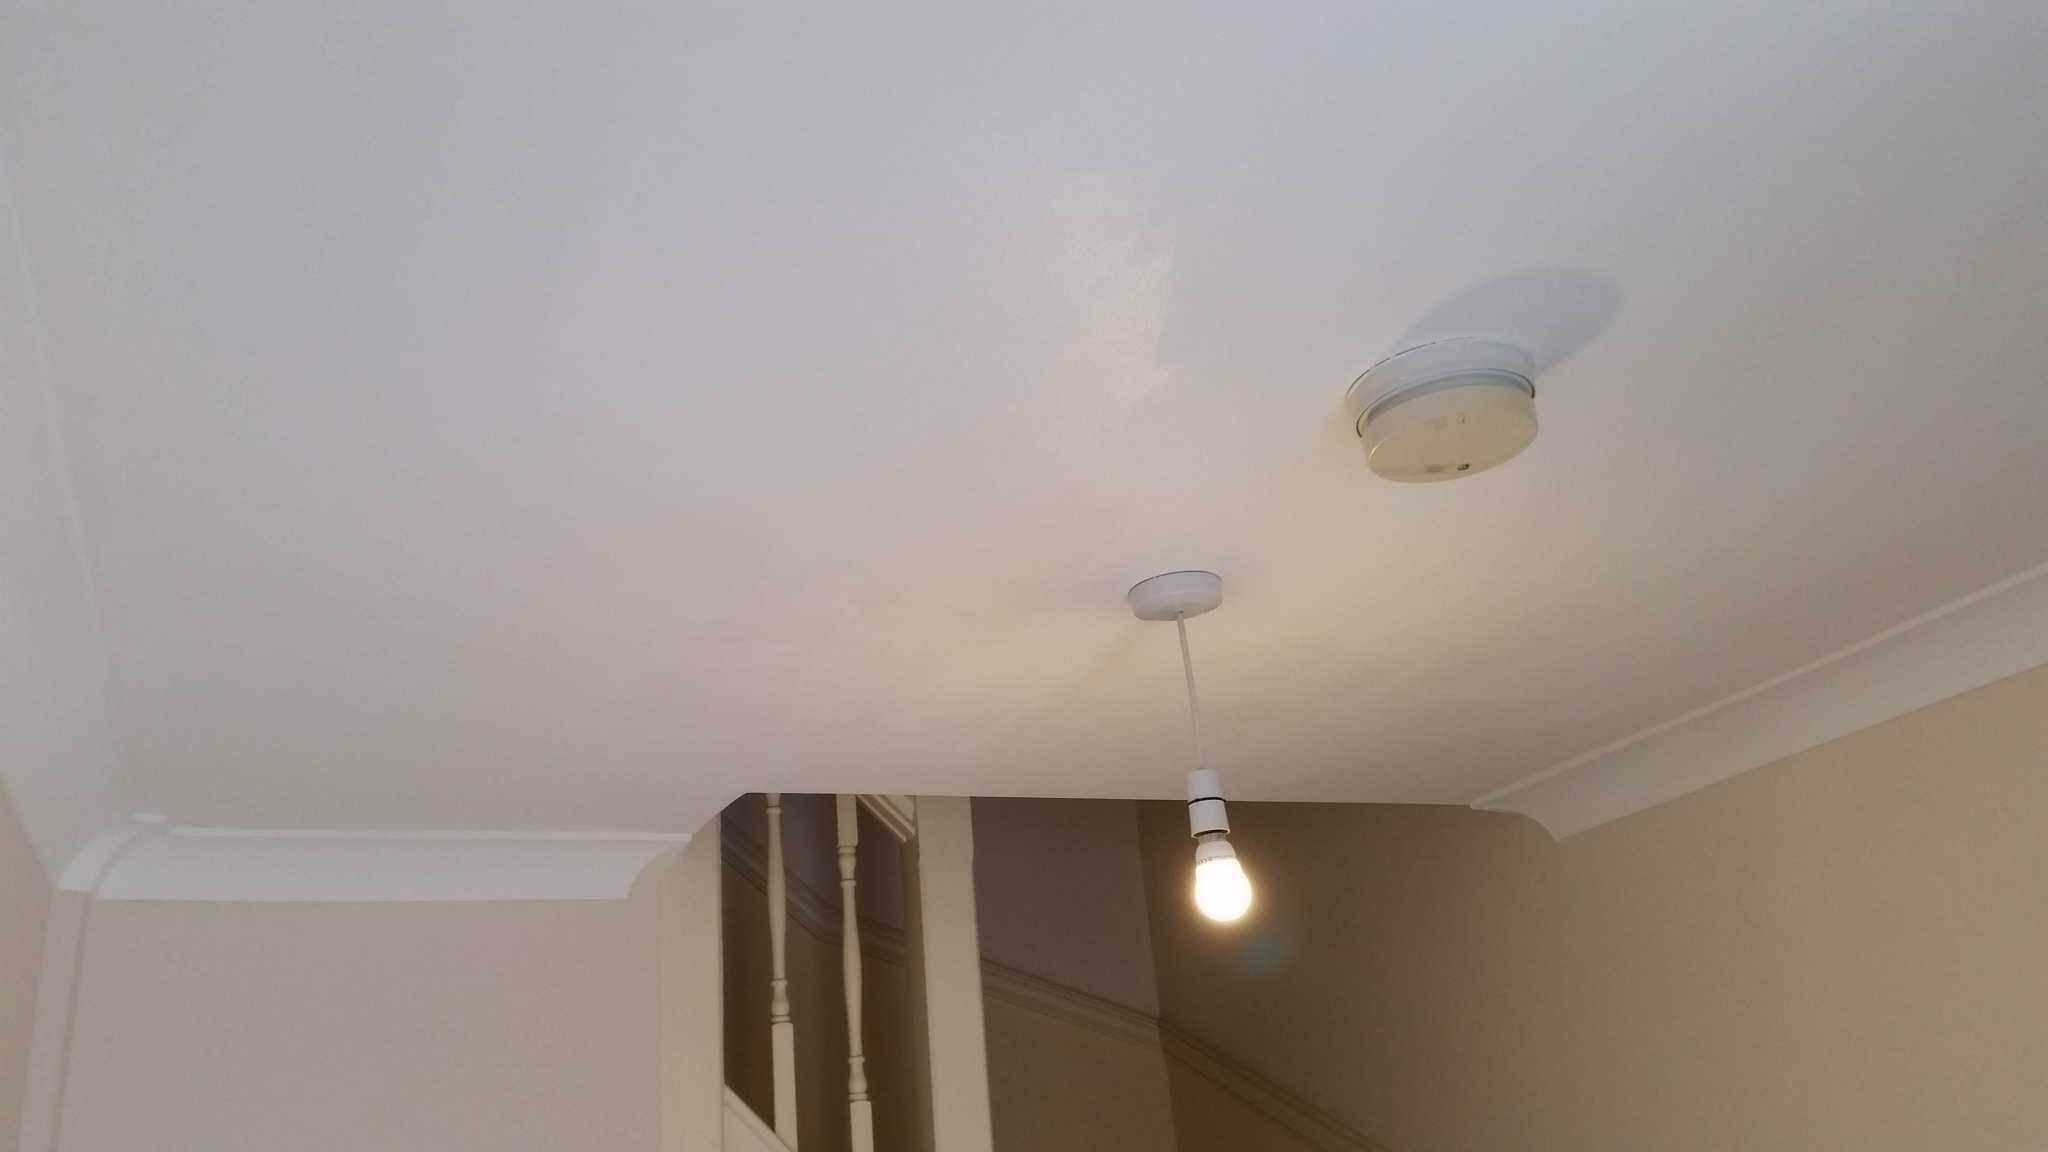 Repairing Water Damage To Walls And Ceilings